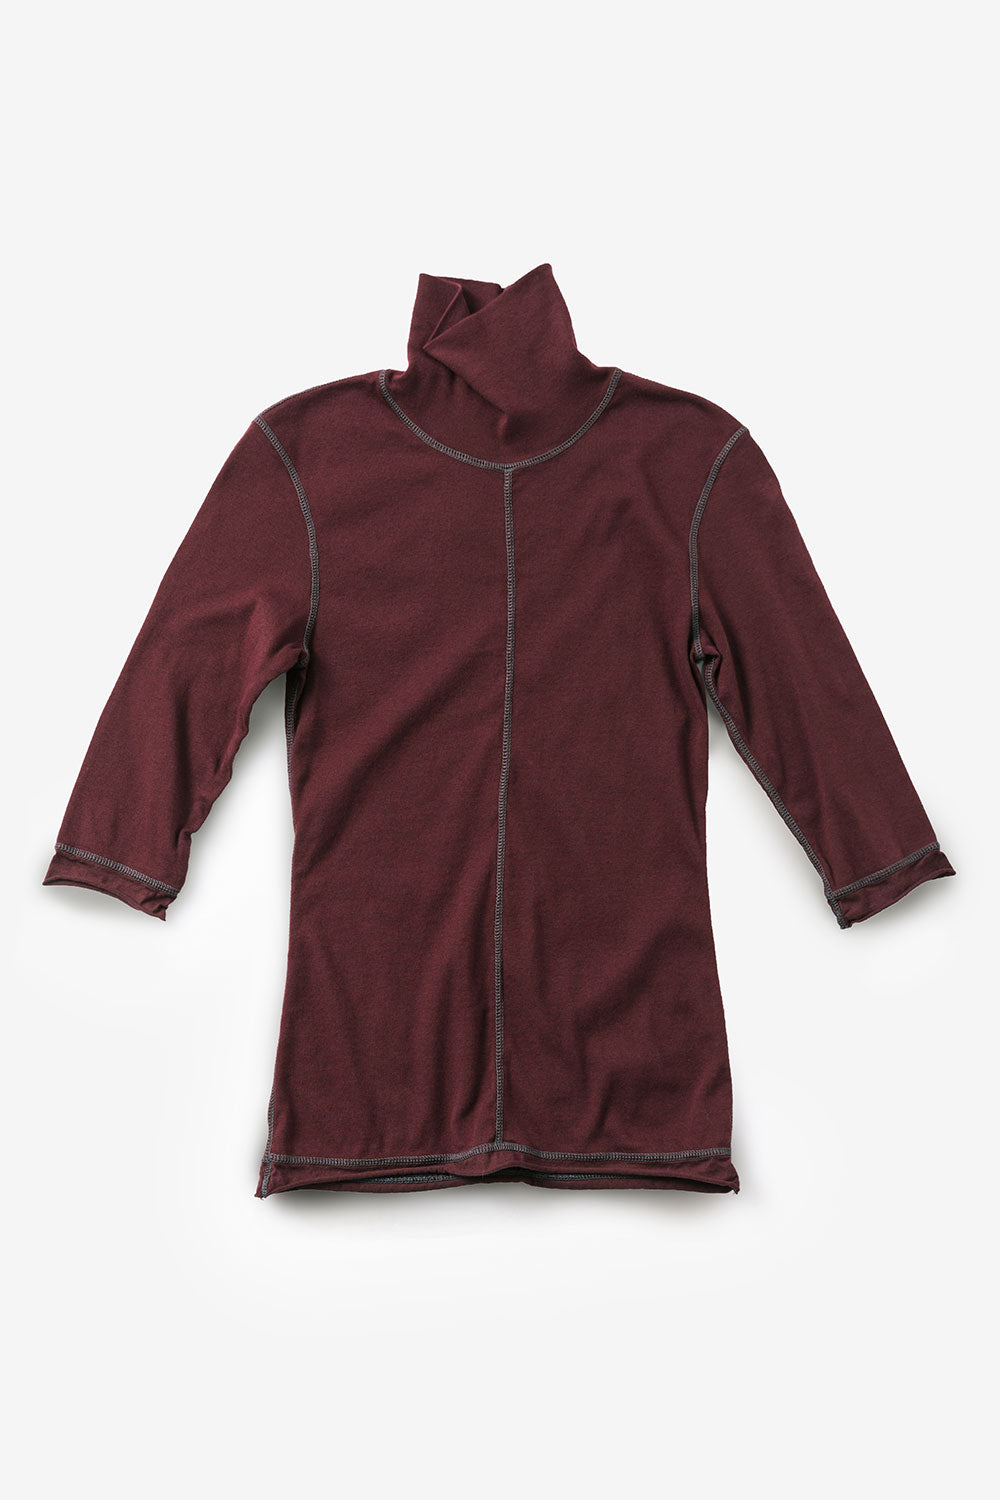 Alabama Chanin The Rib Turtleneck Organic Cotton Women's Top with Elbow Length Sleeves in Plum